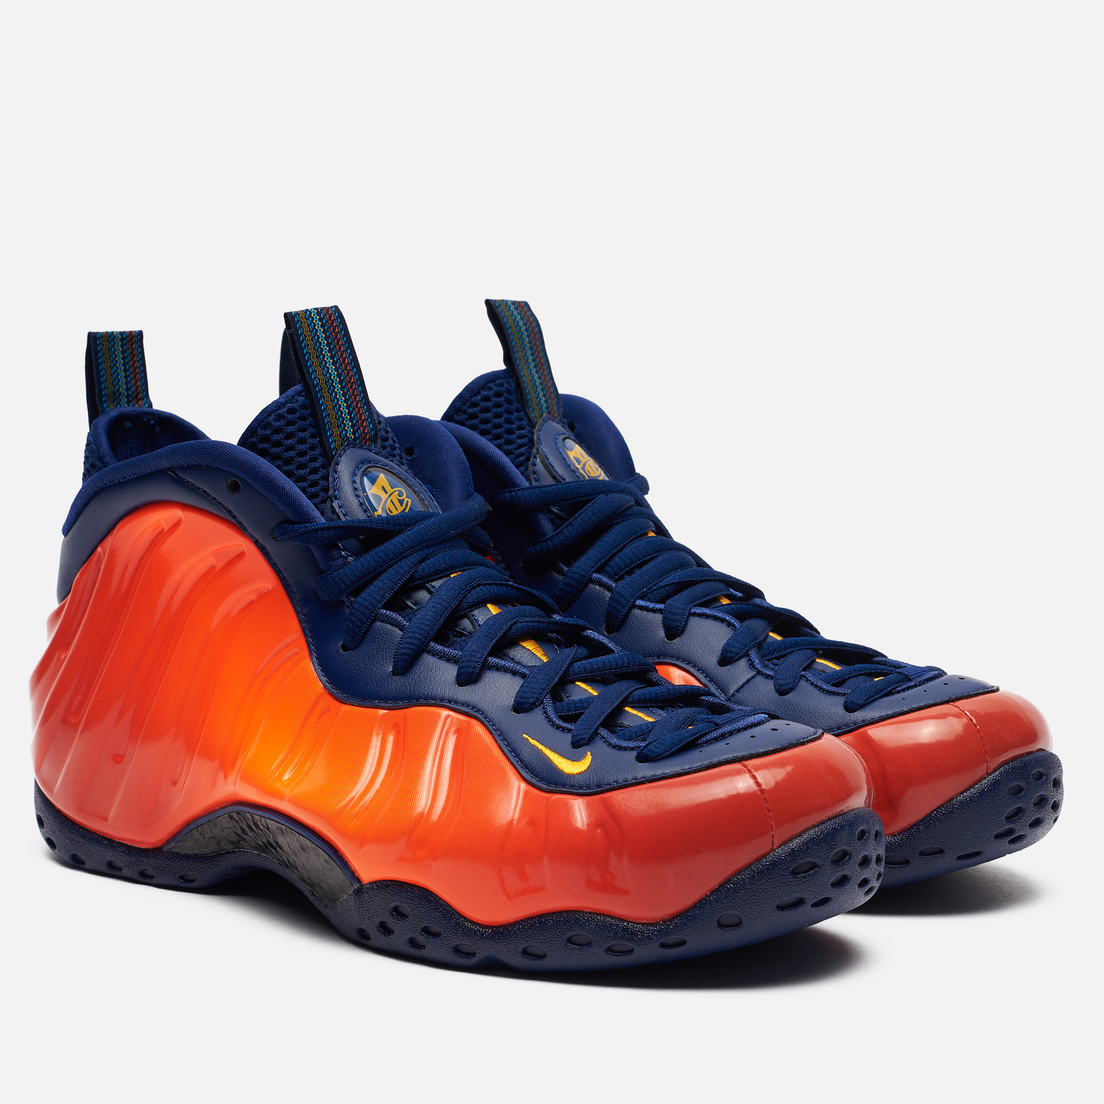 Nike Air Foamposite One Liverpool Custom Nice Kicks